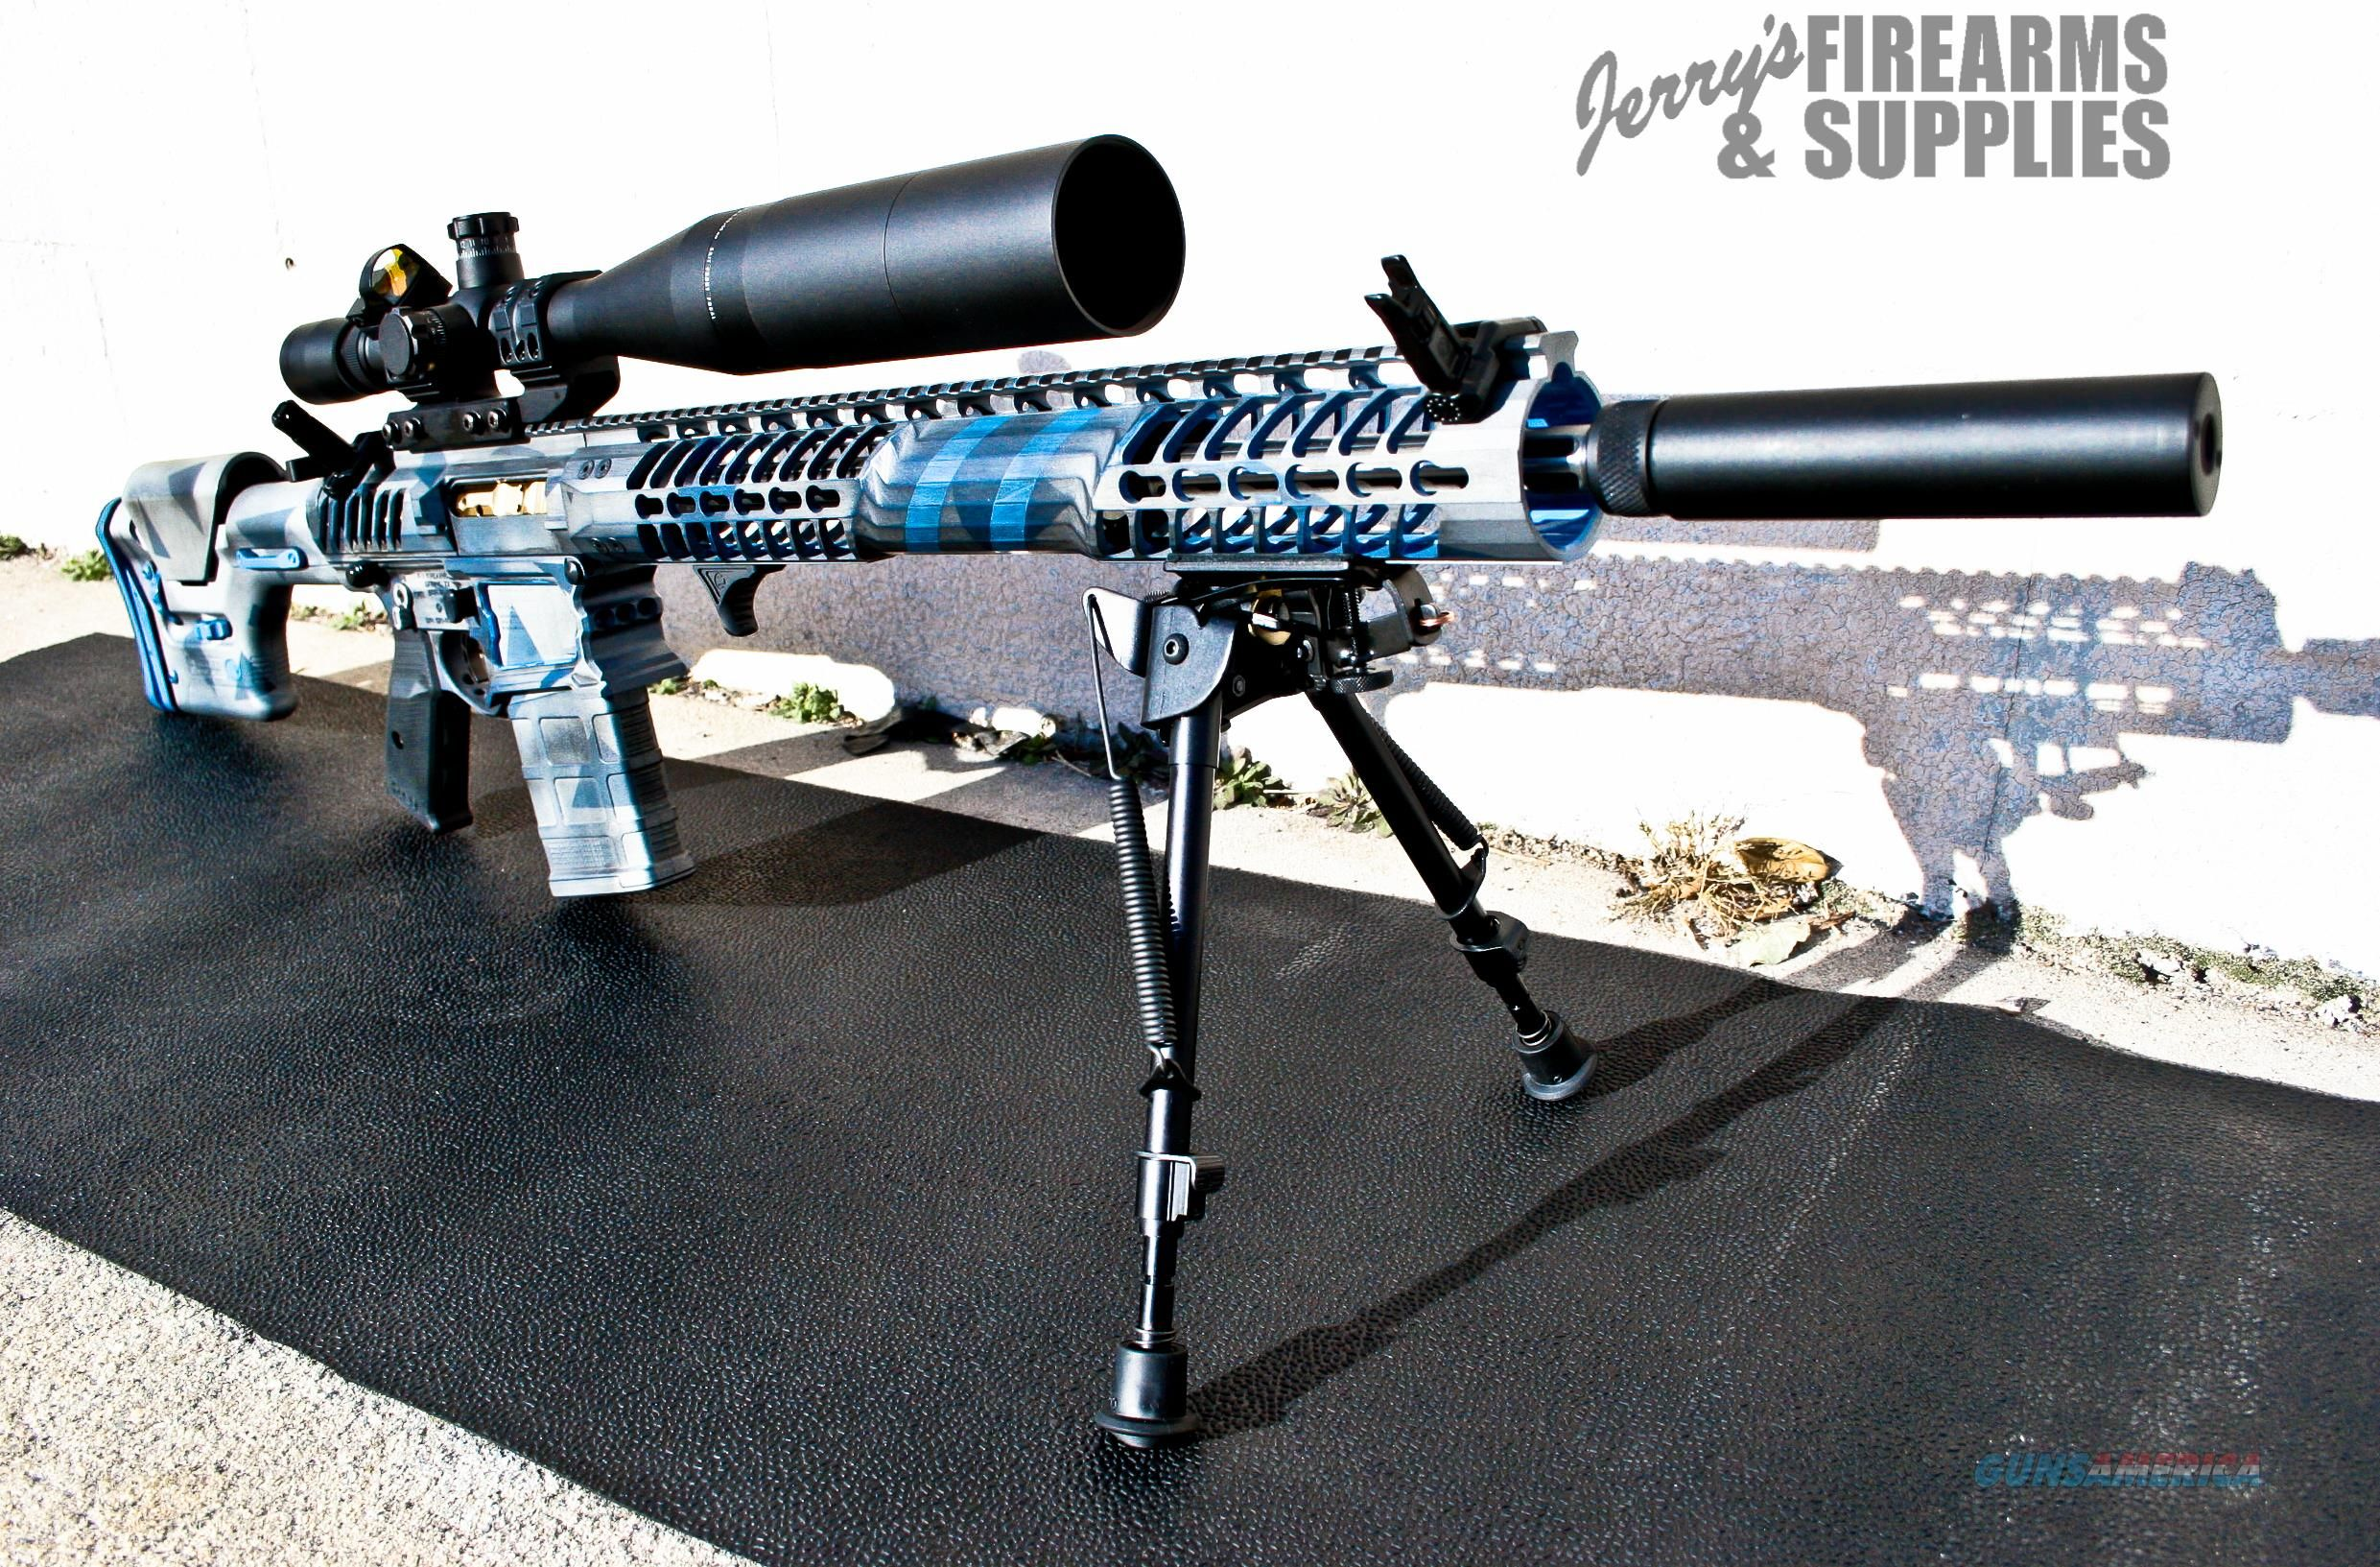 Fully Modified F-1 Firearms 308 Rifle - Skeletonized AR-10